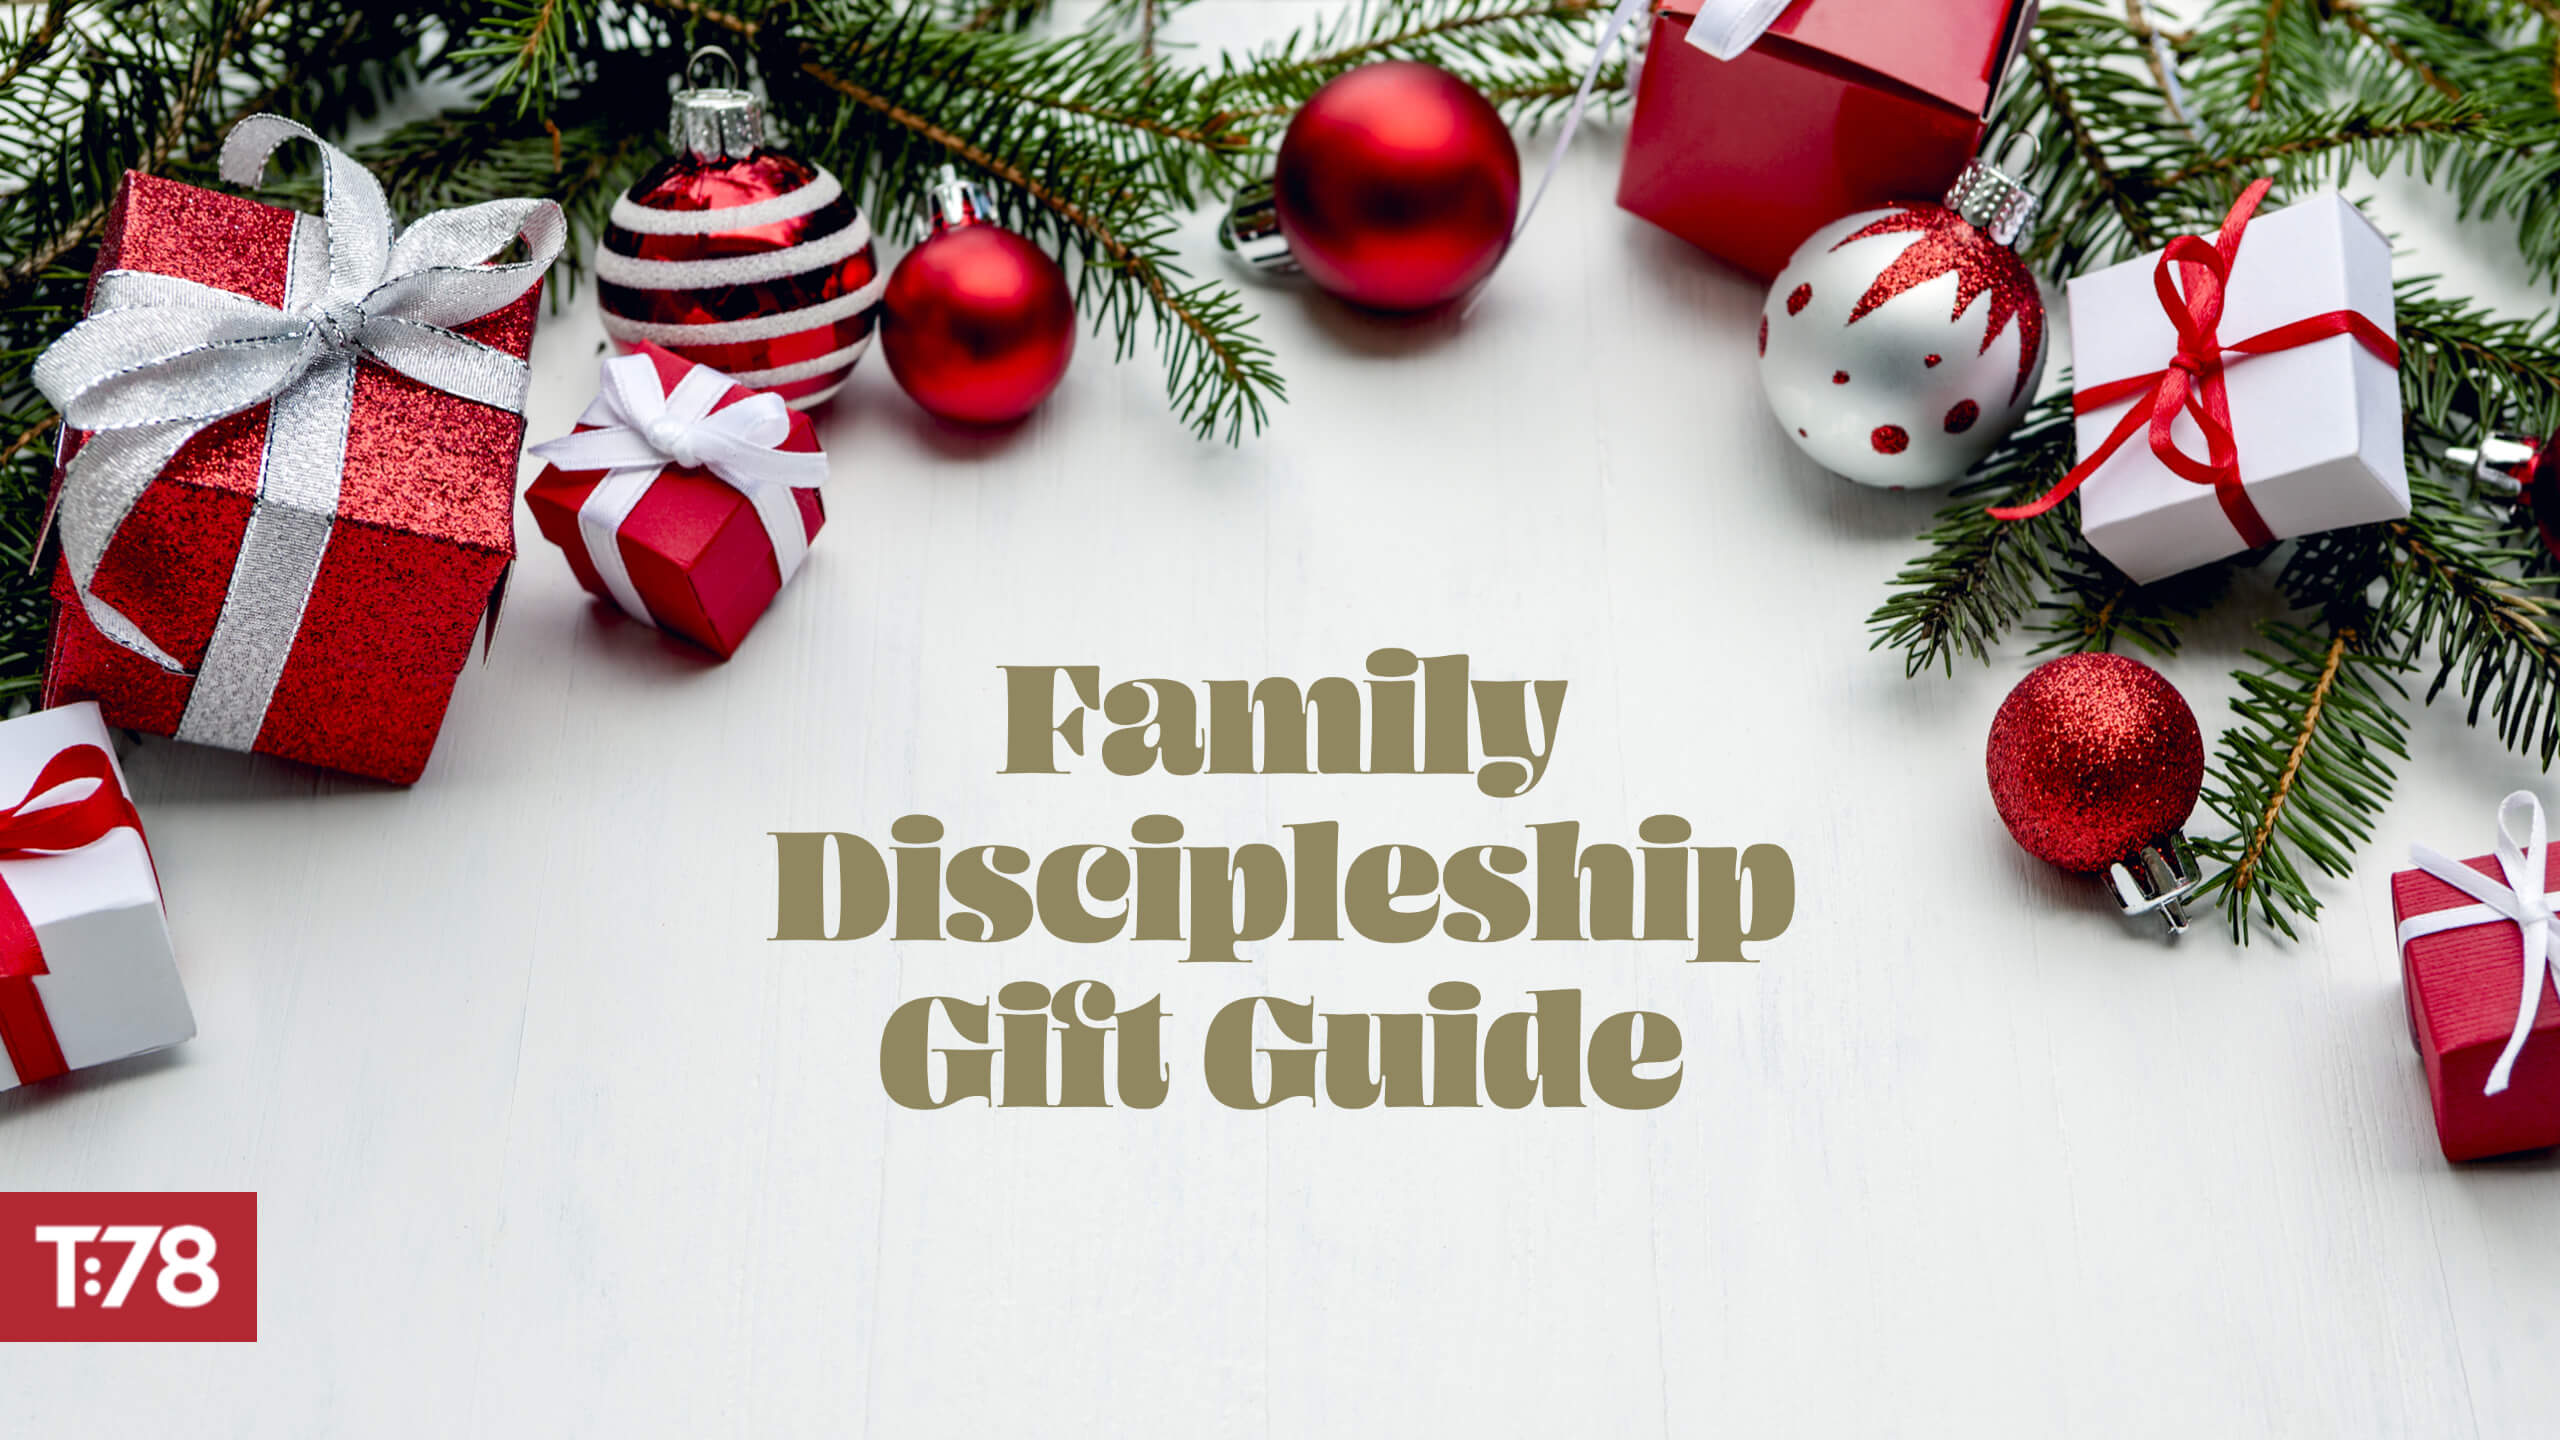 A Guide for Family Discipleship Gifts